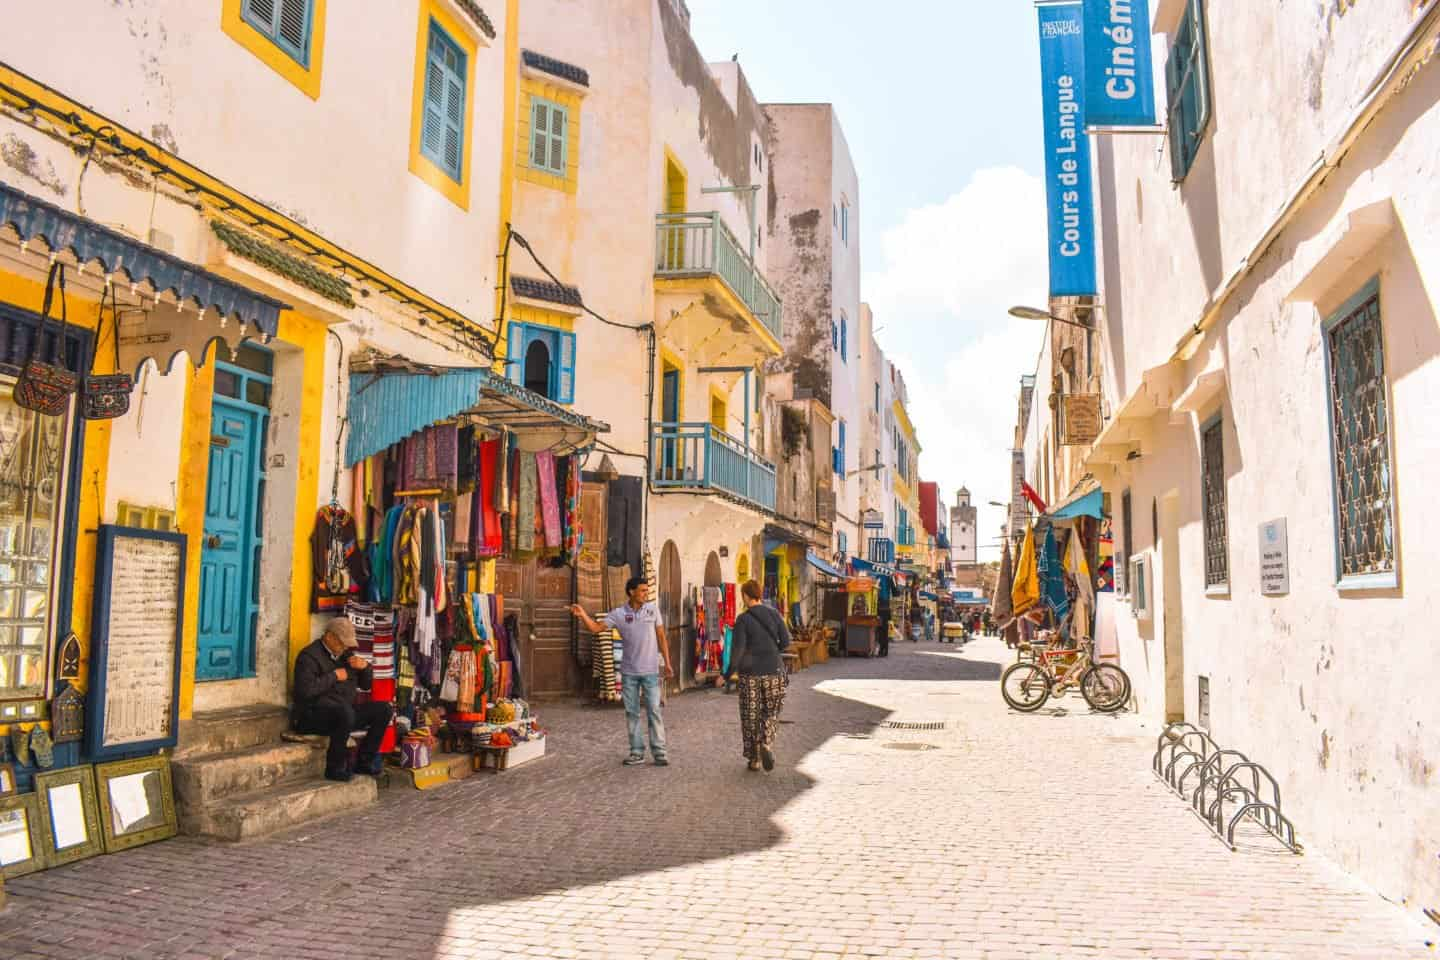 exploring the streets of Essaouira